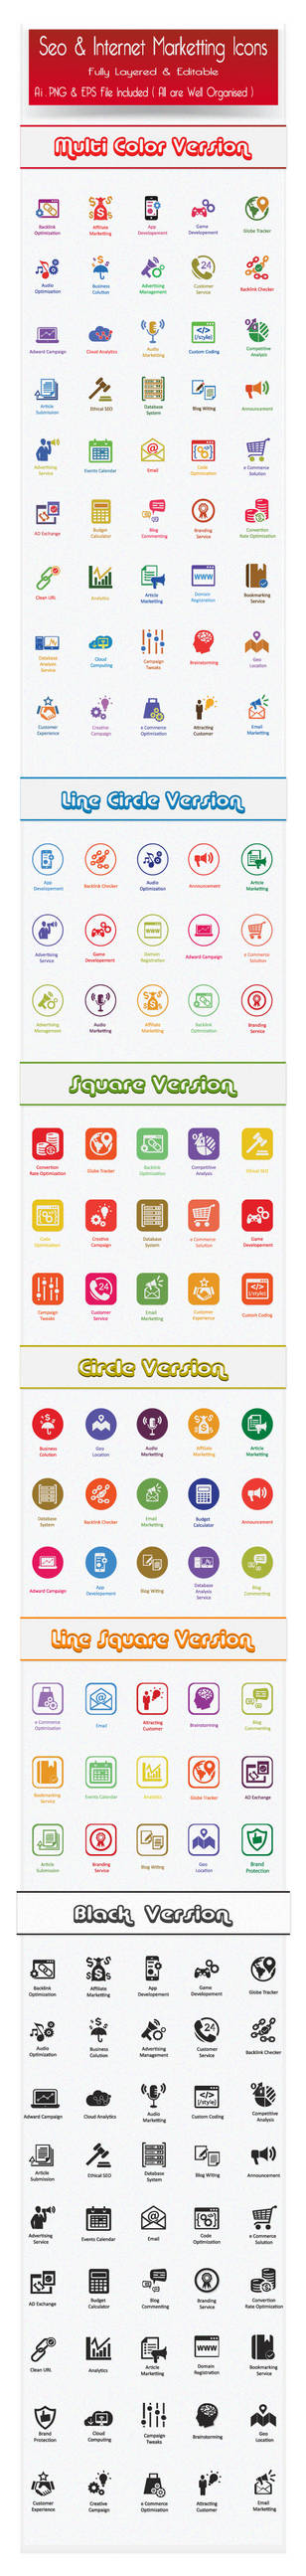 Flat SEO Icons and Internet Marketing Icons by CURSORCH